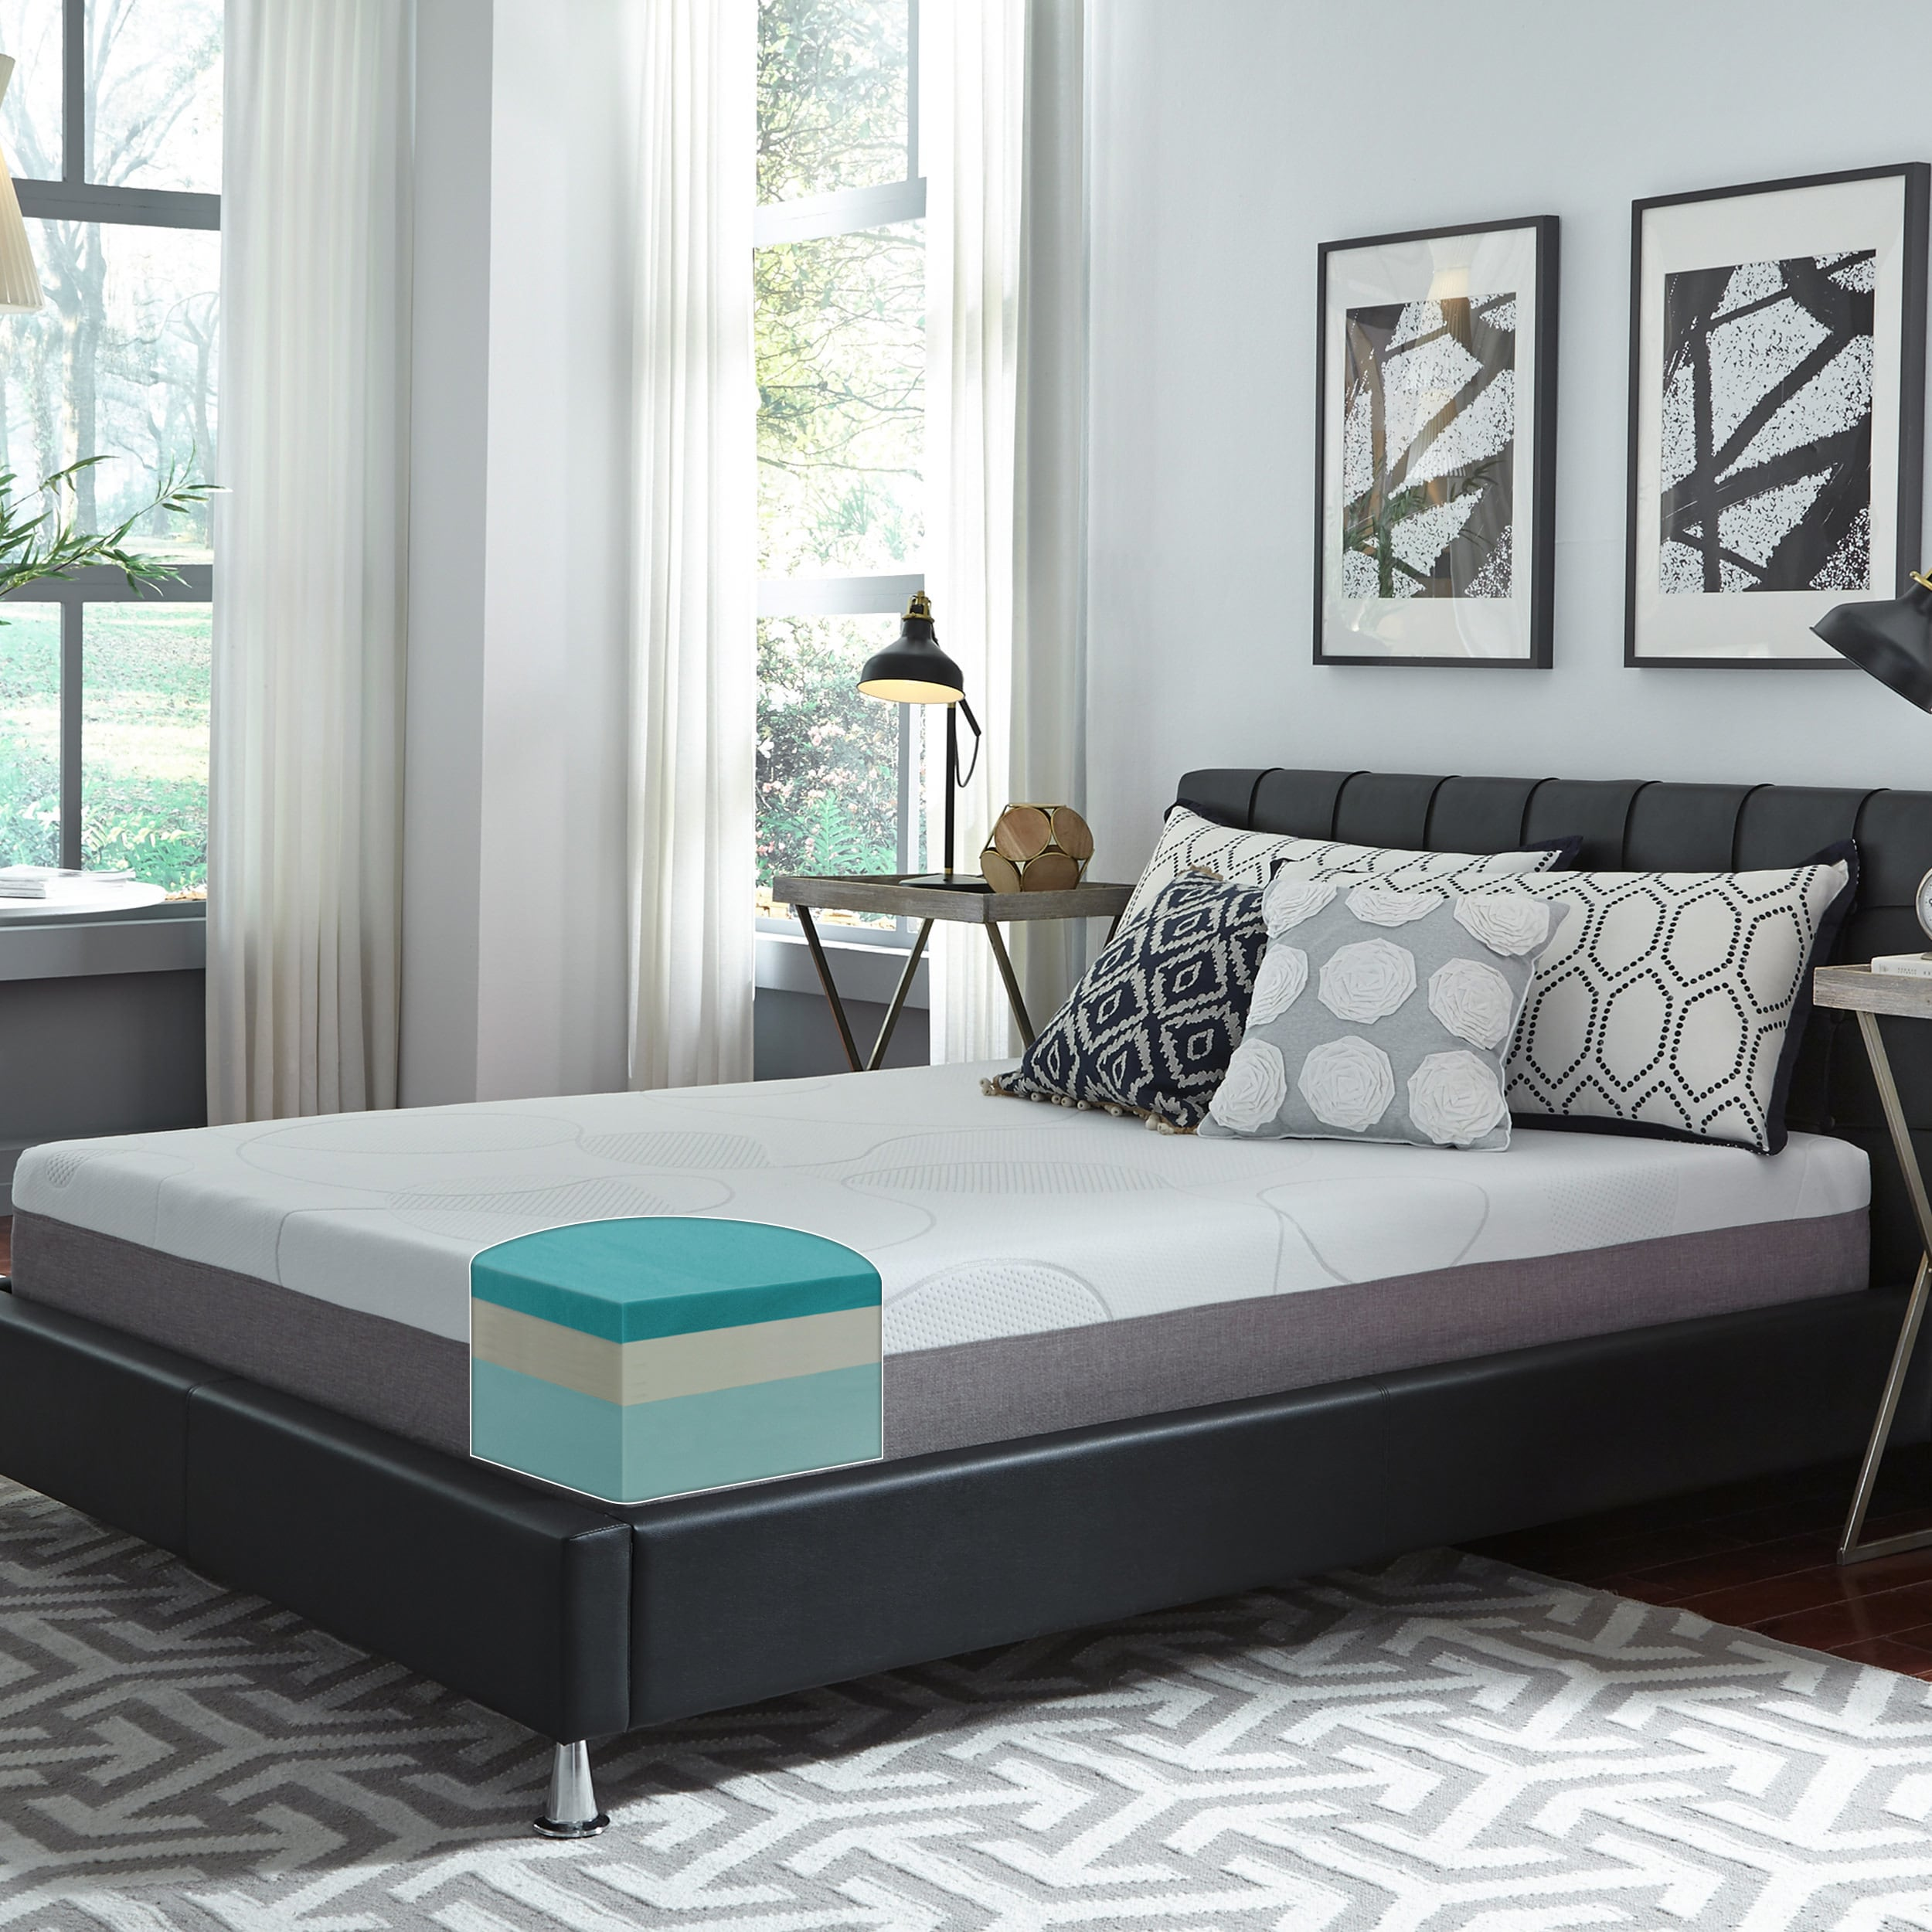 beds sleep base upholstered with number custom prices online recessed paris ii mattresses bedworks bed ensemble